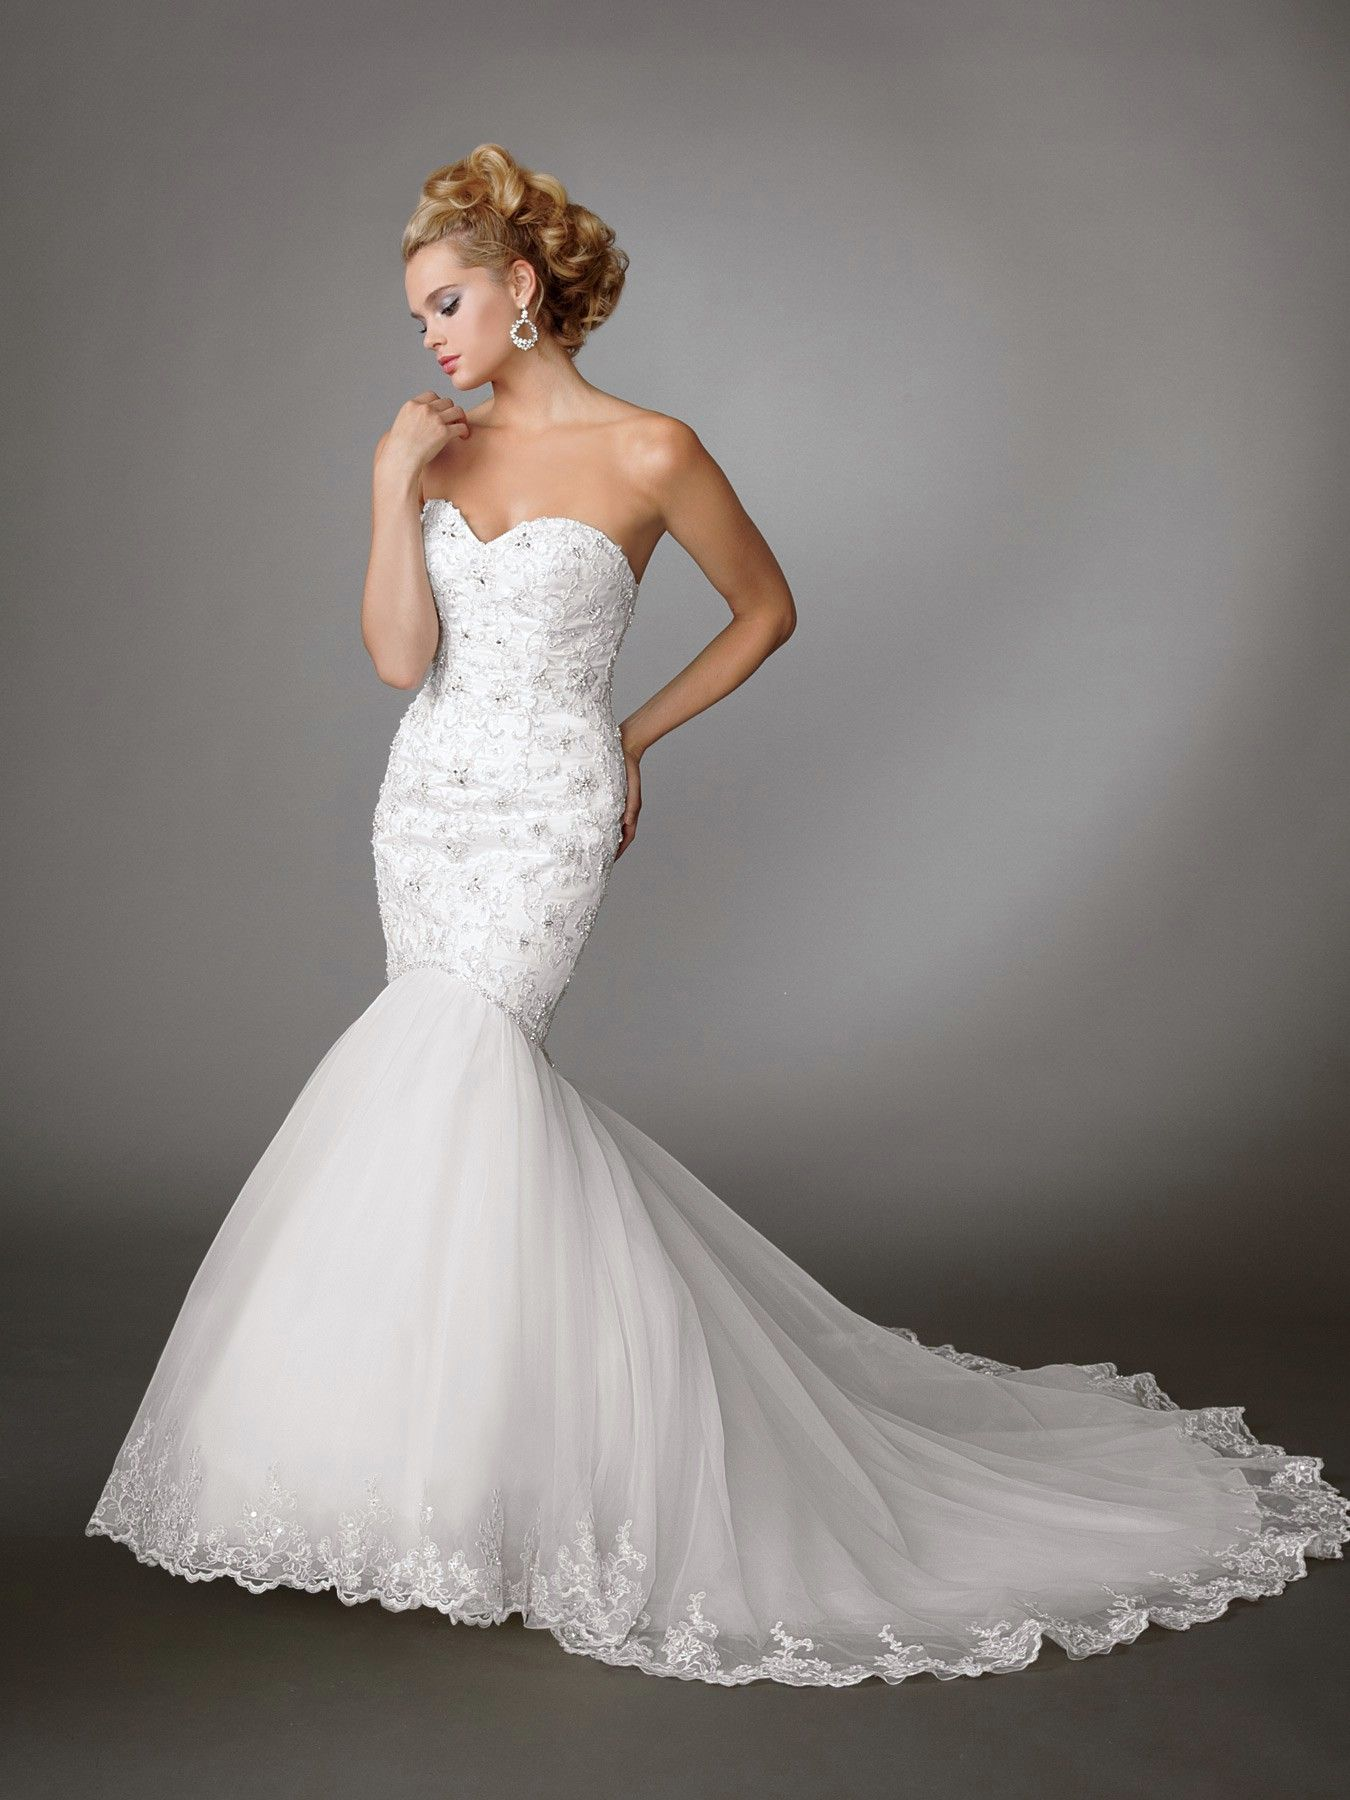 wedding dresses mermaid style Jordan Wedding Dresses Style M wedding dresses